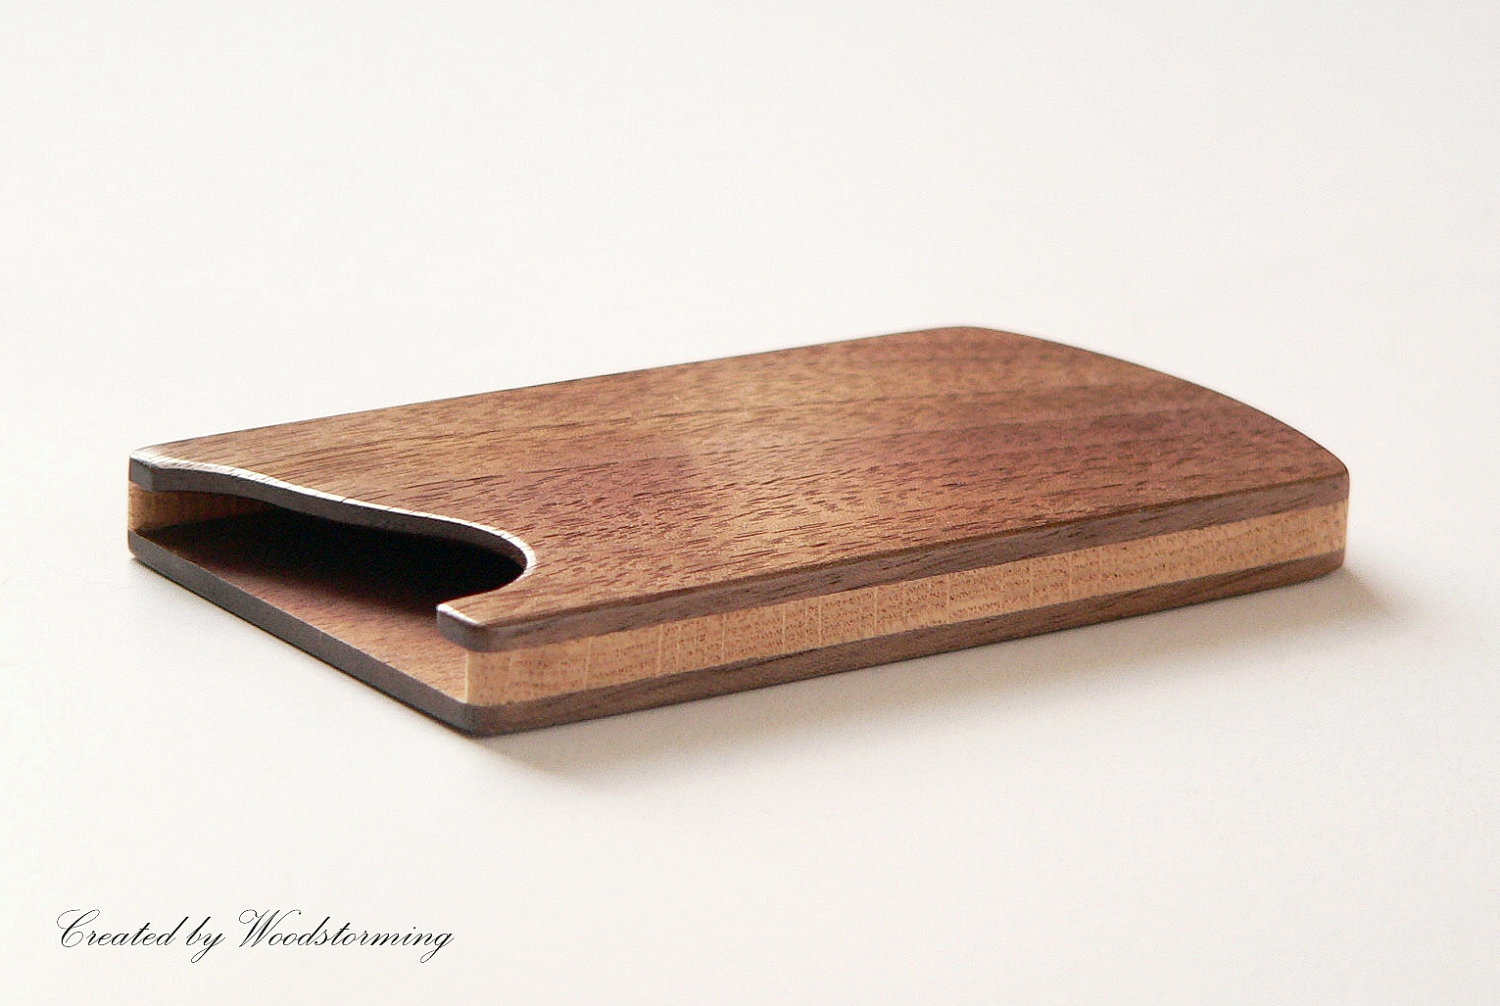 Wood business card holder business card case by woodstorming for Wooden business card case